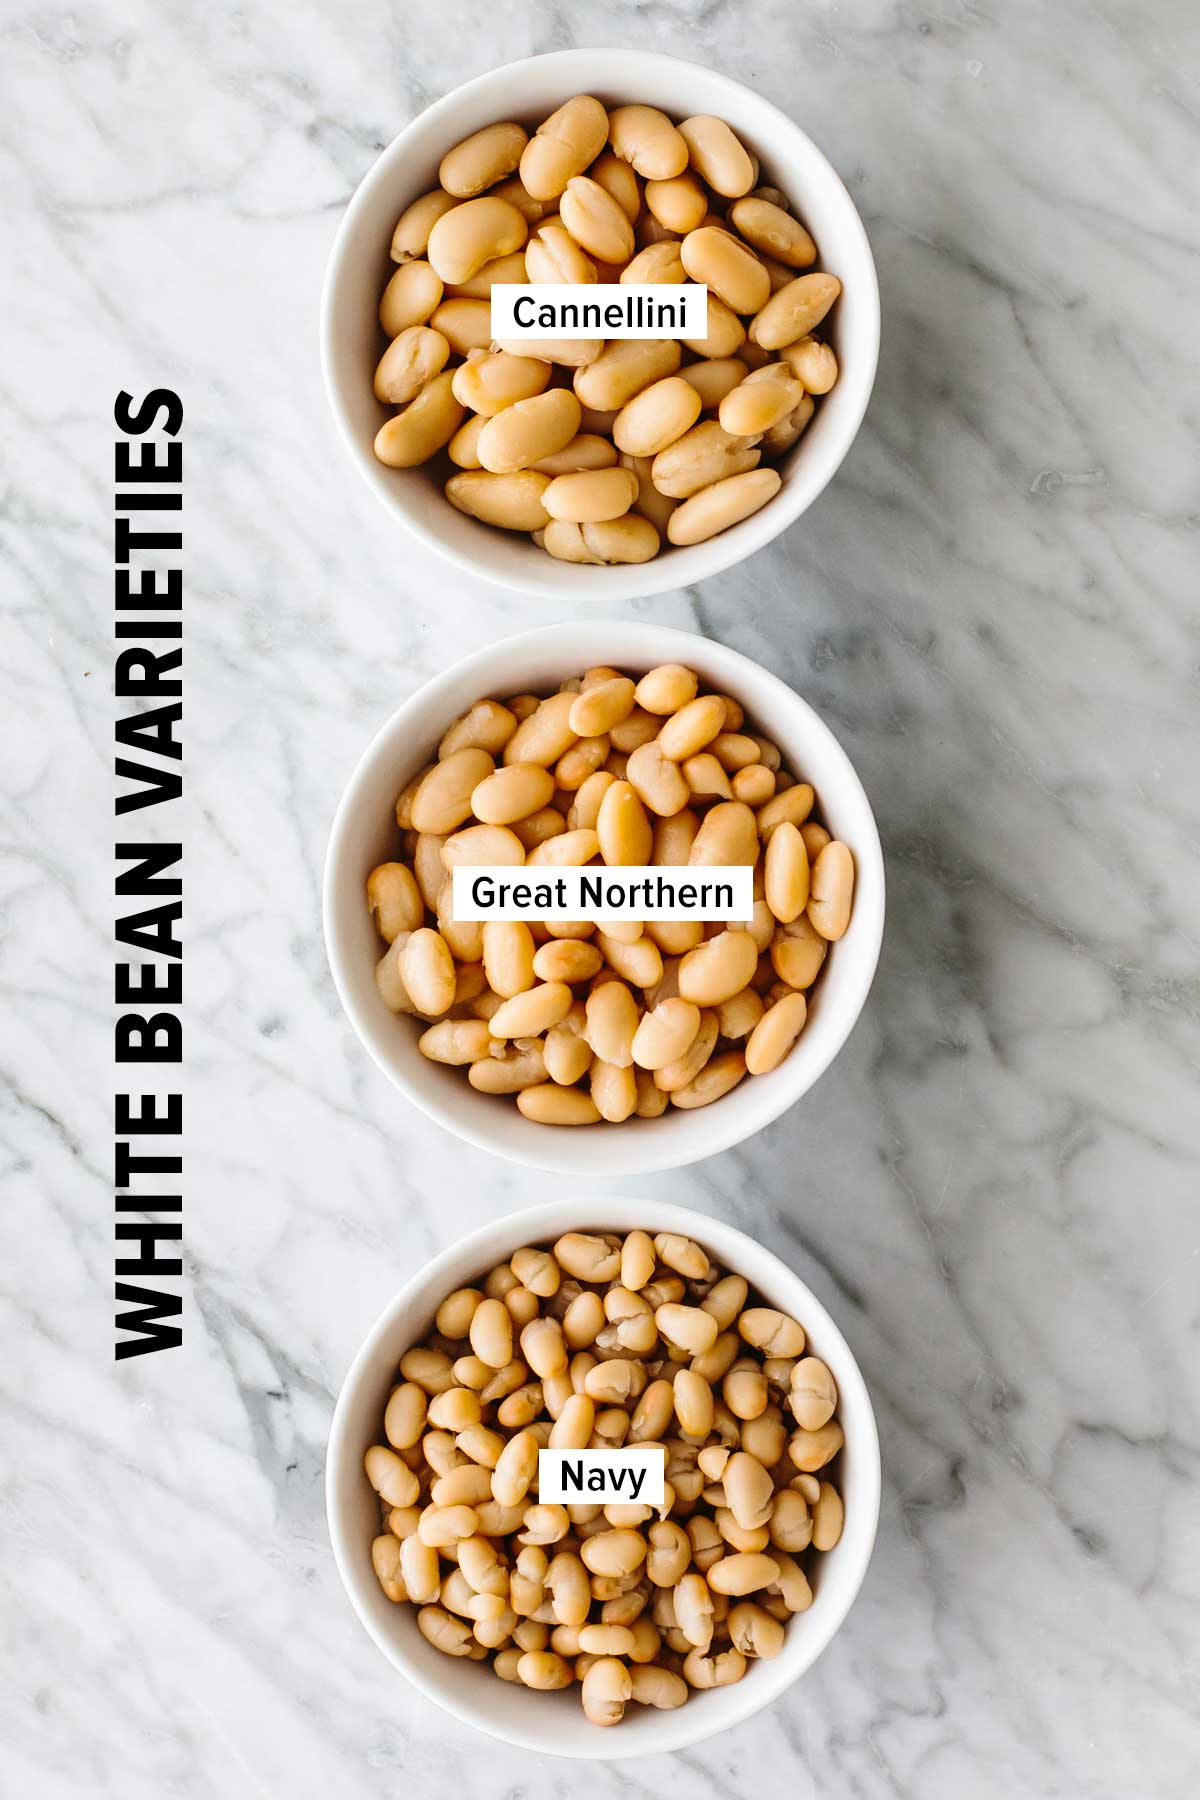 Different varieties of white beans in bowls.